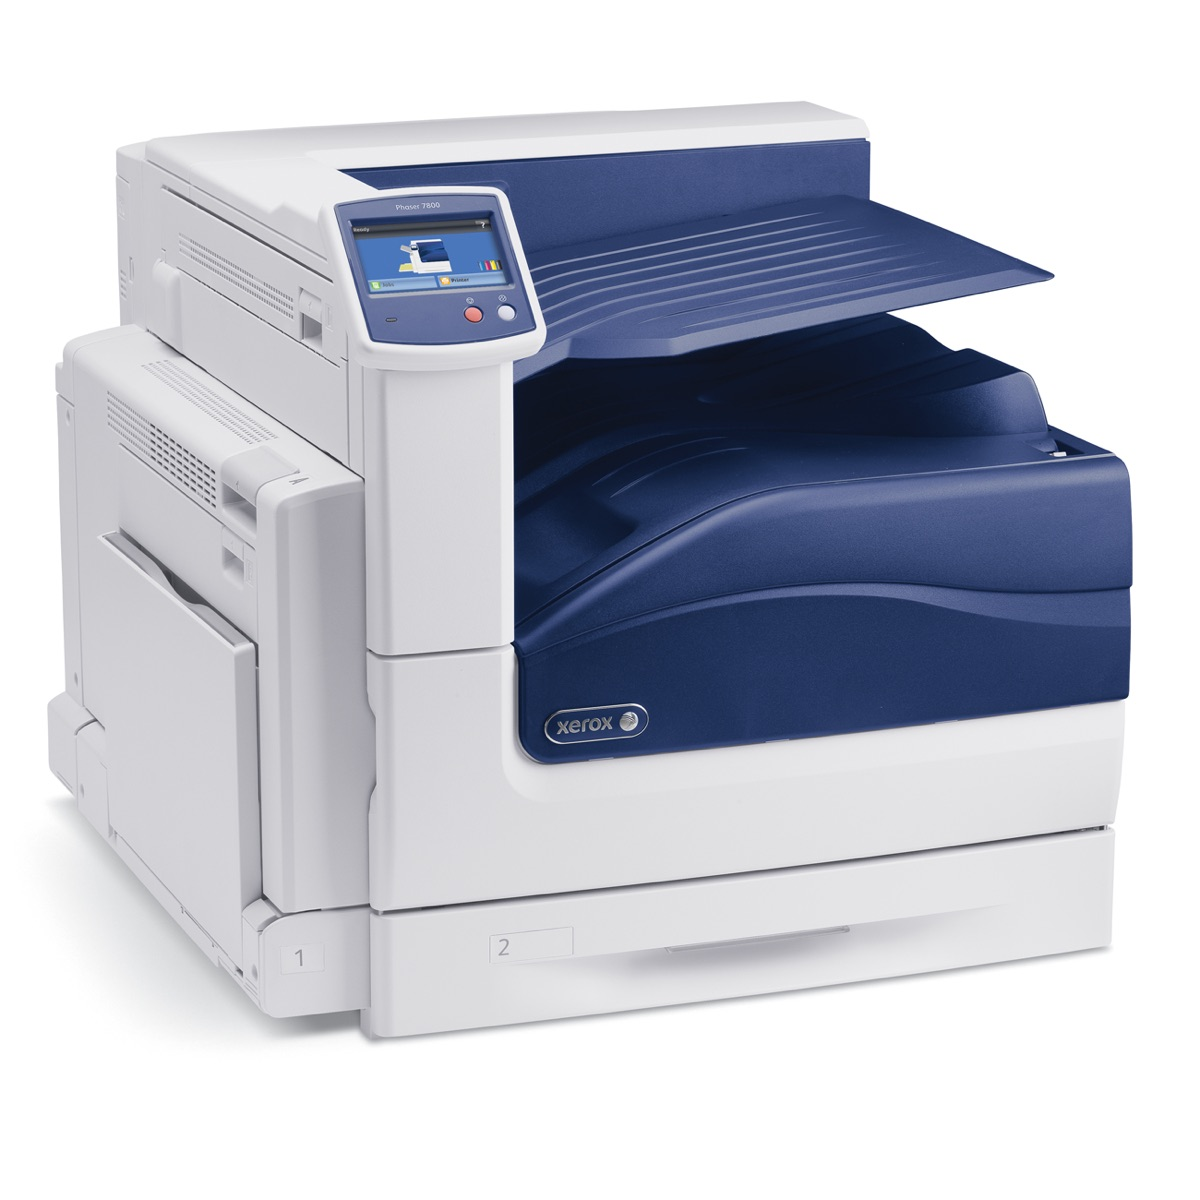 Xerox Phaser 7800 Series Printer